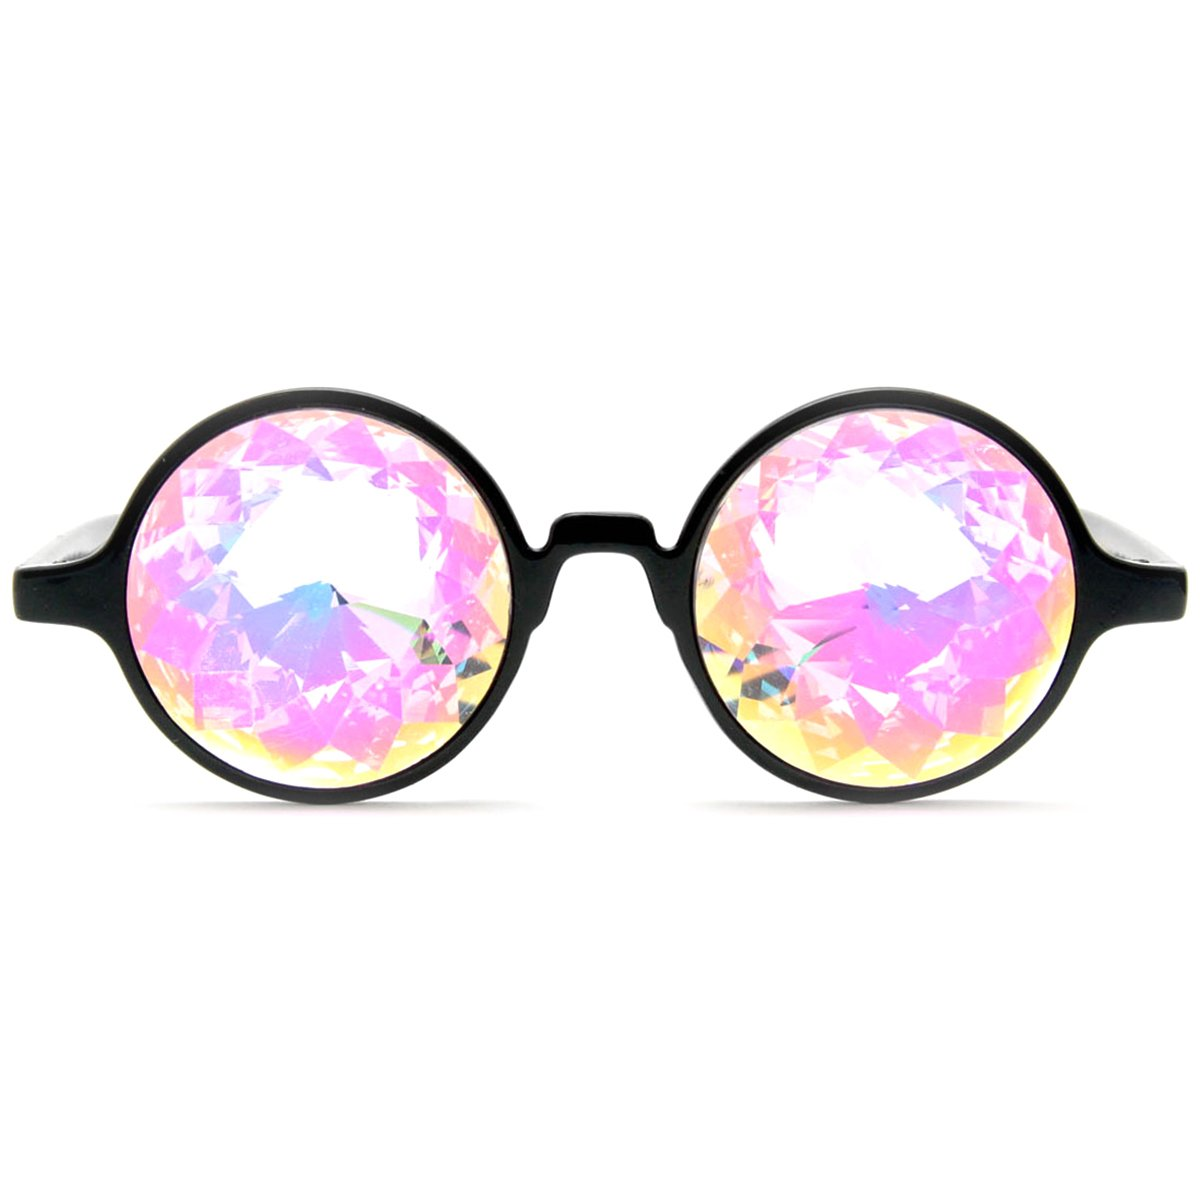 GloFX Black Kaleidoscope Glasses- Rainbow Rave Prism Diffraction by GloFX